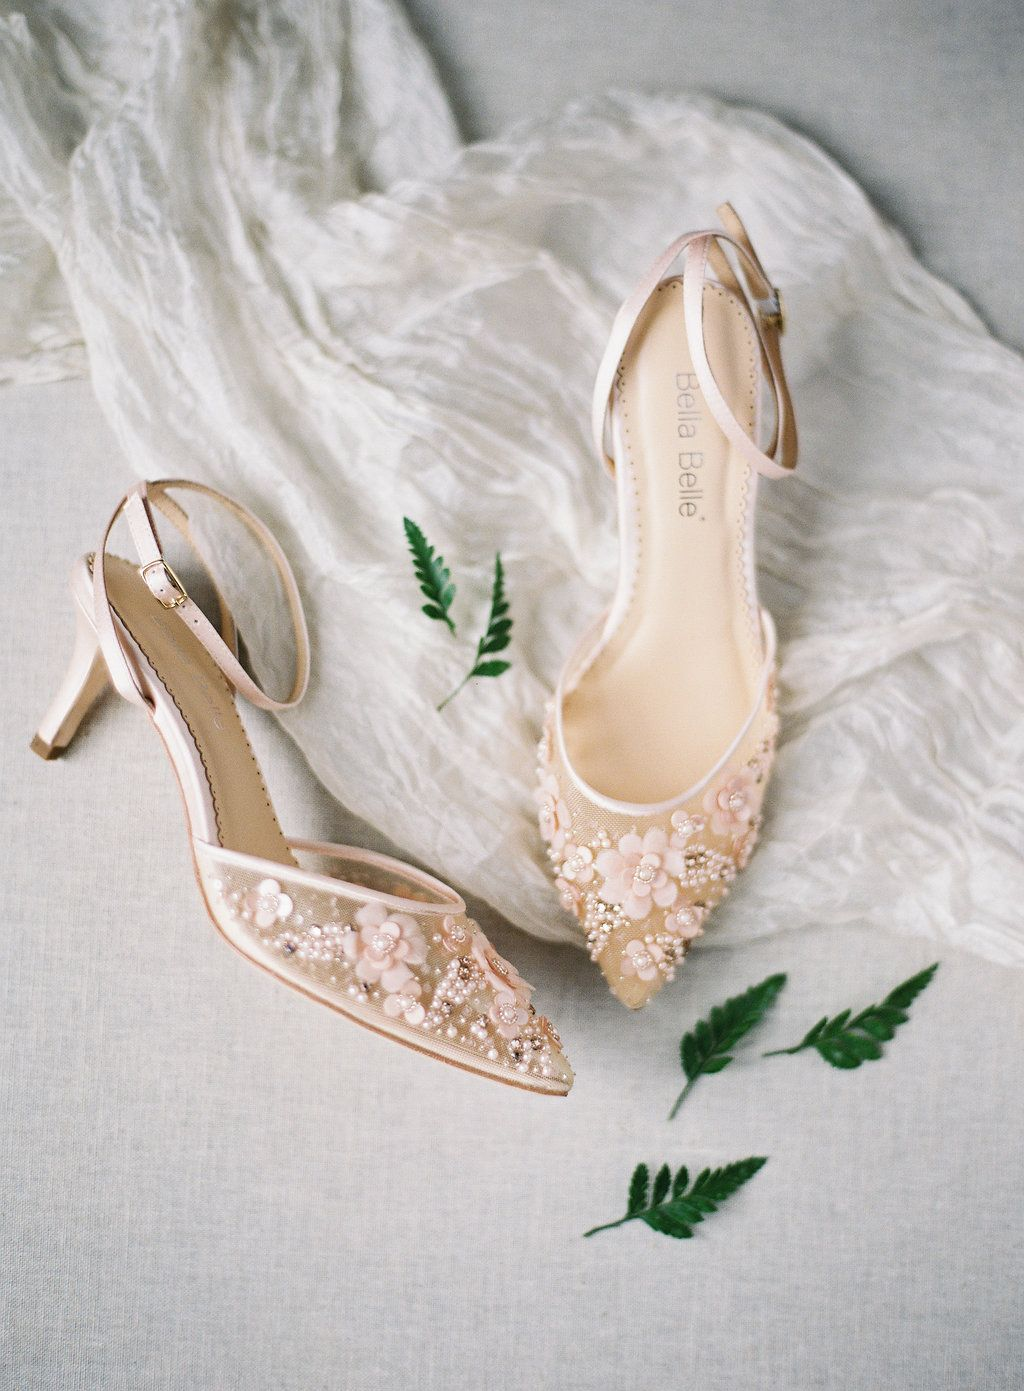 Low Heel Pearl Wedding Evening Shoes Blush Wedding Shoes Pearl Wedding Shoes Wedding Shoes Low Heel